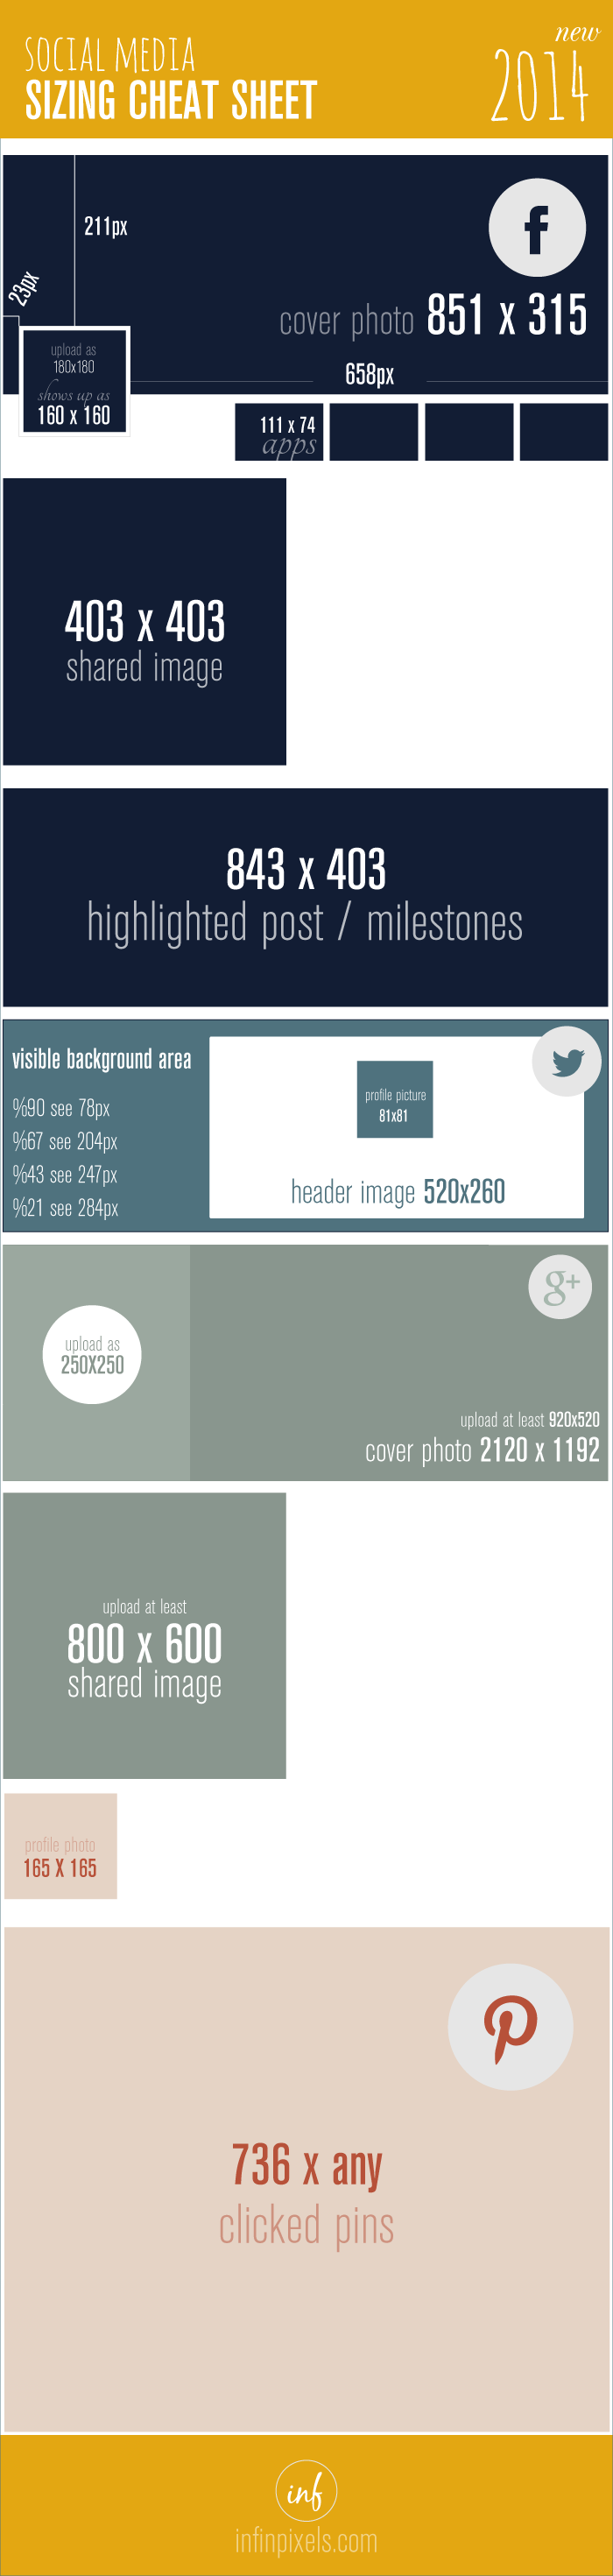 Social media image size sheet 2014